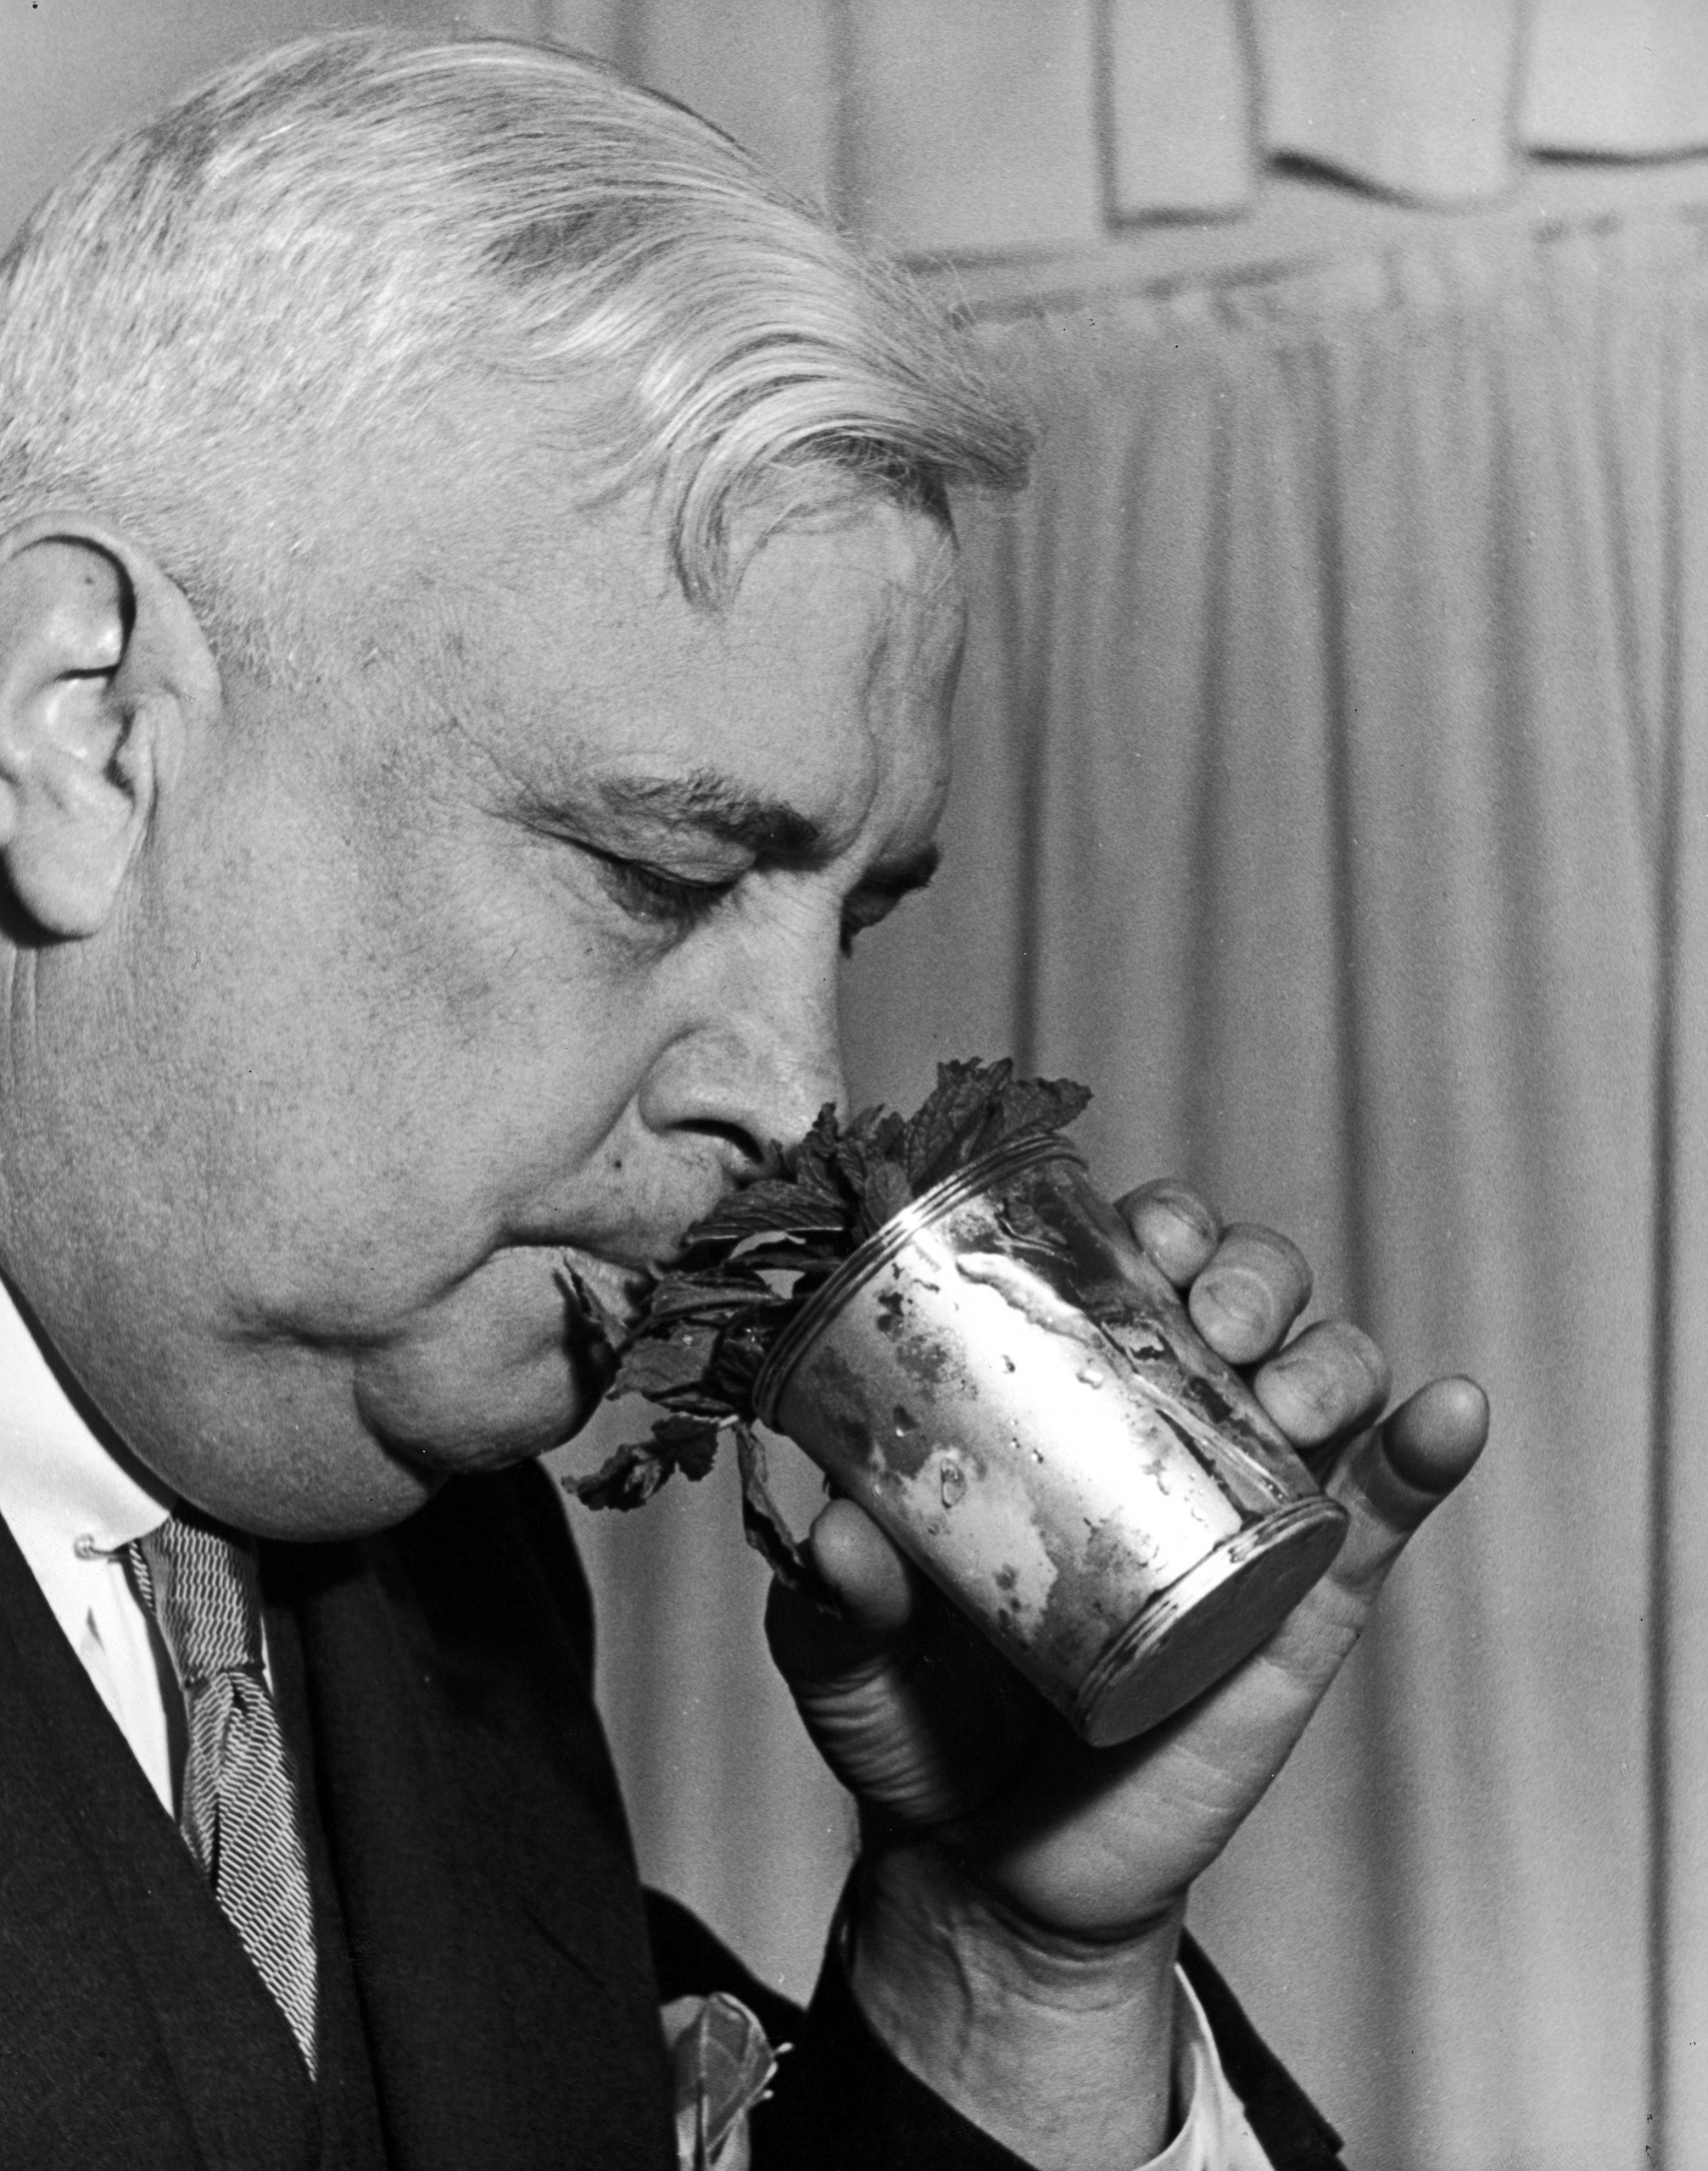 Caption from LIFE. A perfect mint julep expression is here displayed by Jonathan Van Dyke Norman, who critically sniffs the aroma of mint and Bourbon as he holds a silver mug somewhat defrosted by affectionate handling.